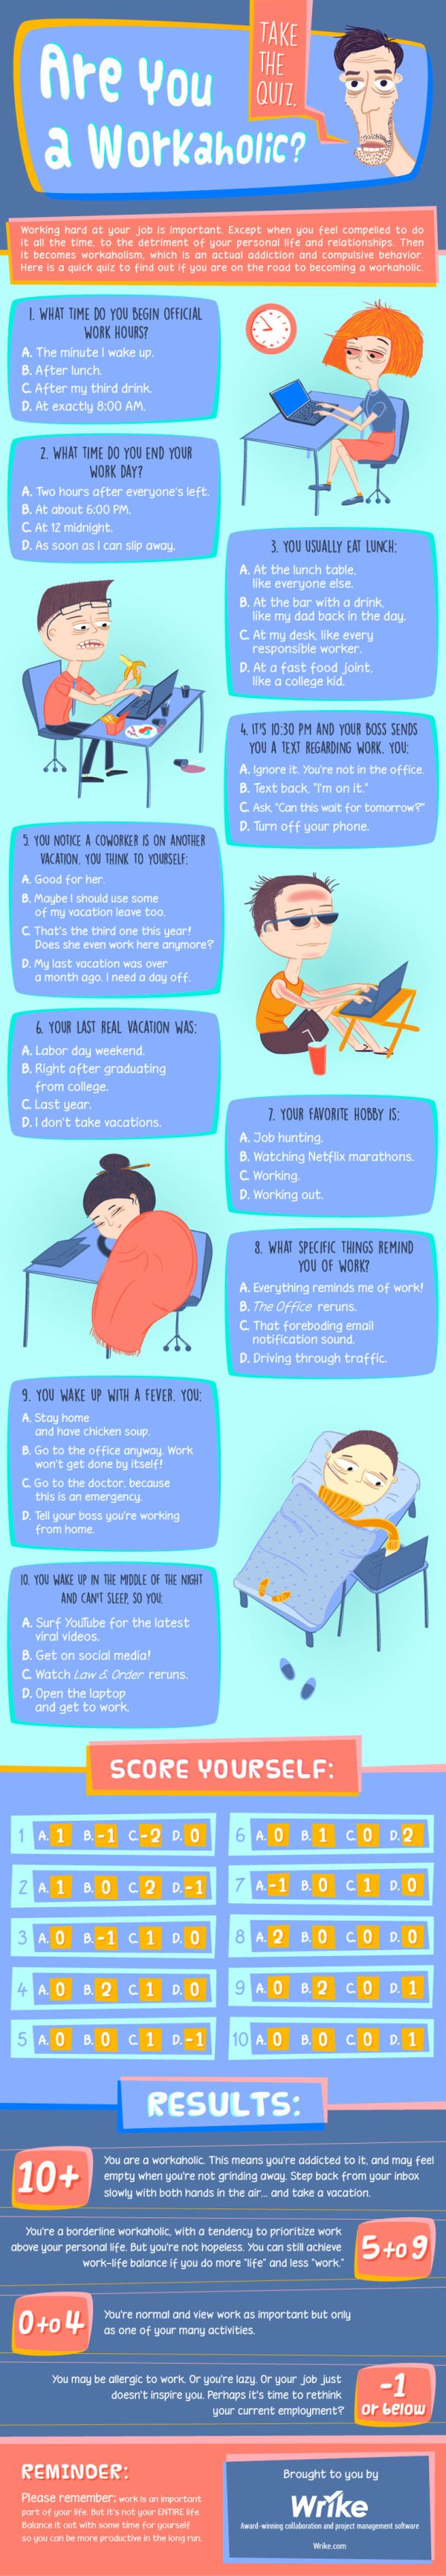 Are you a workaholic - infographic by Wrike